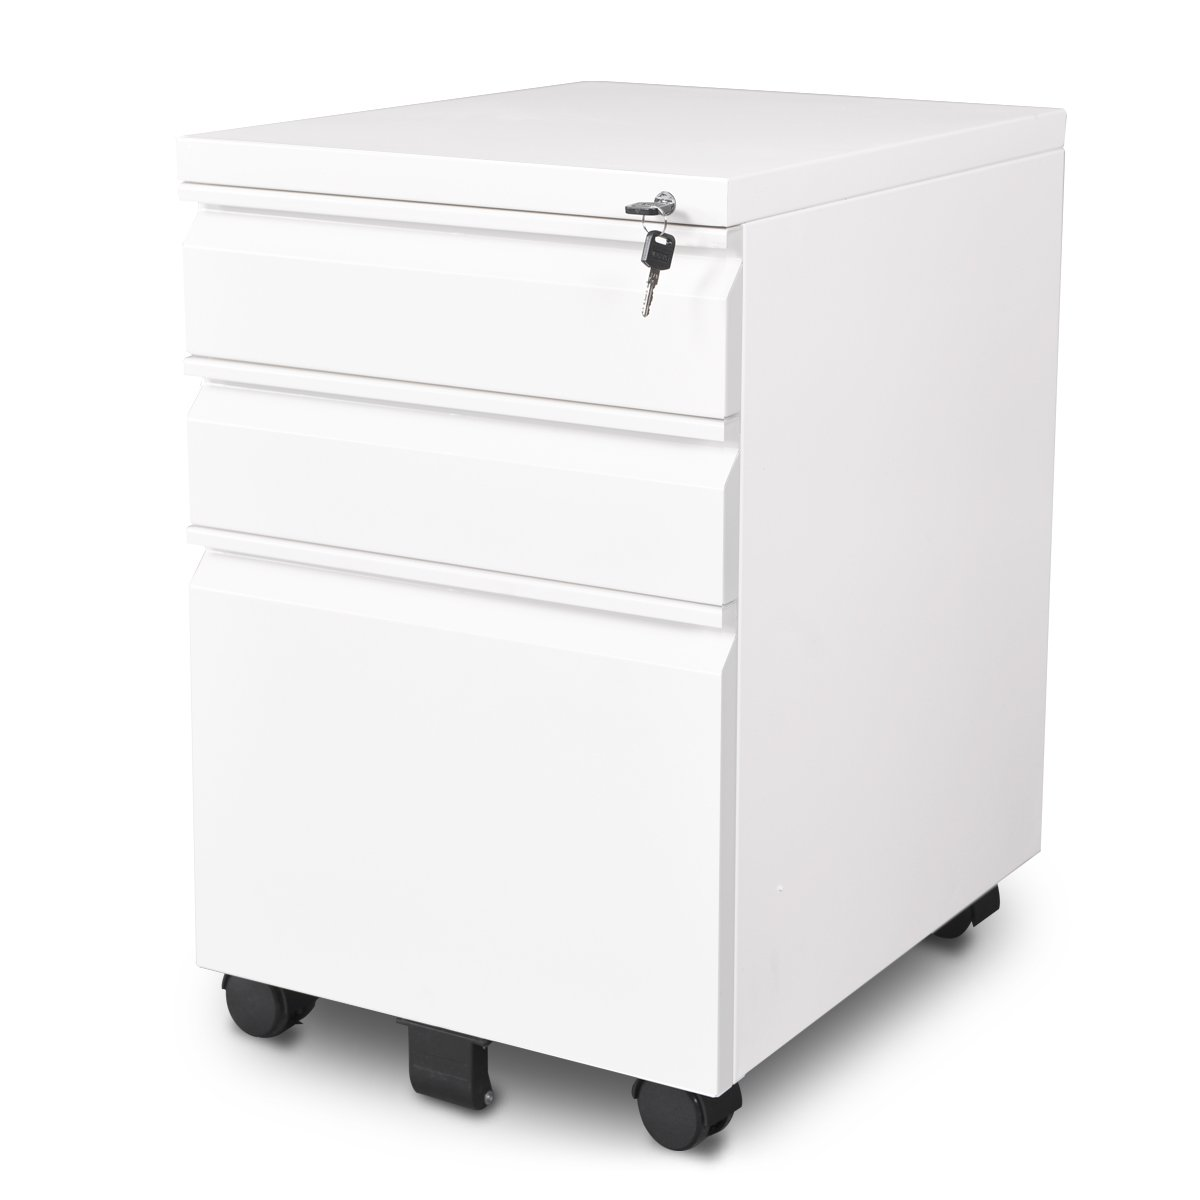 Filing Cabinets On Wheels